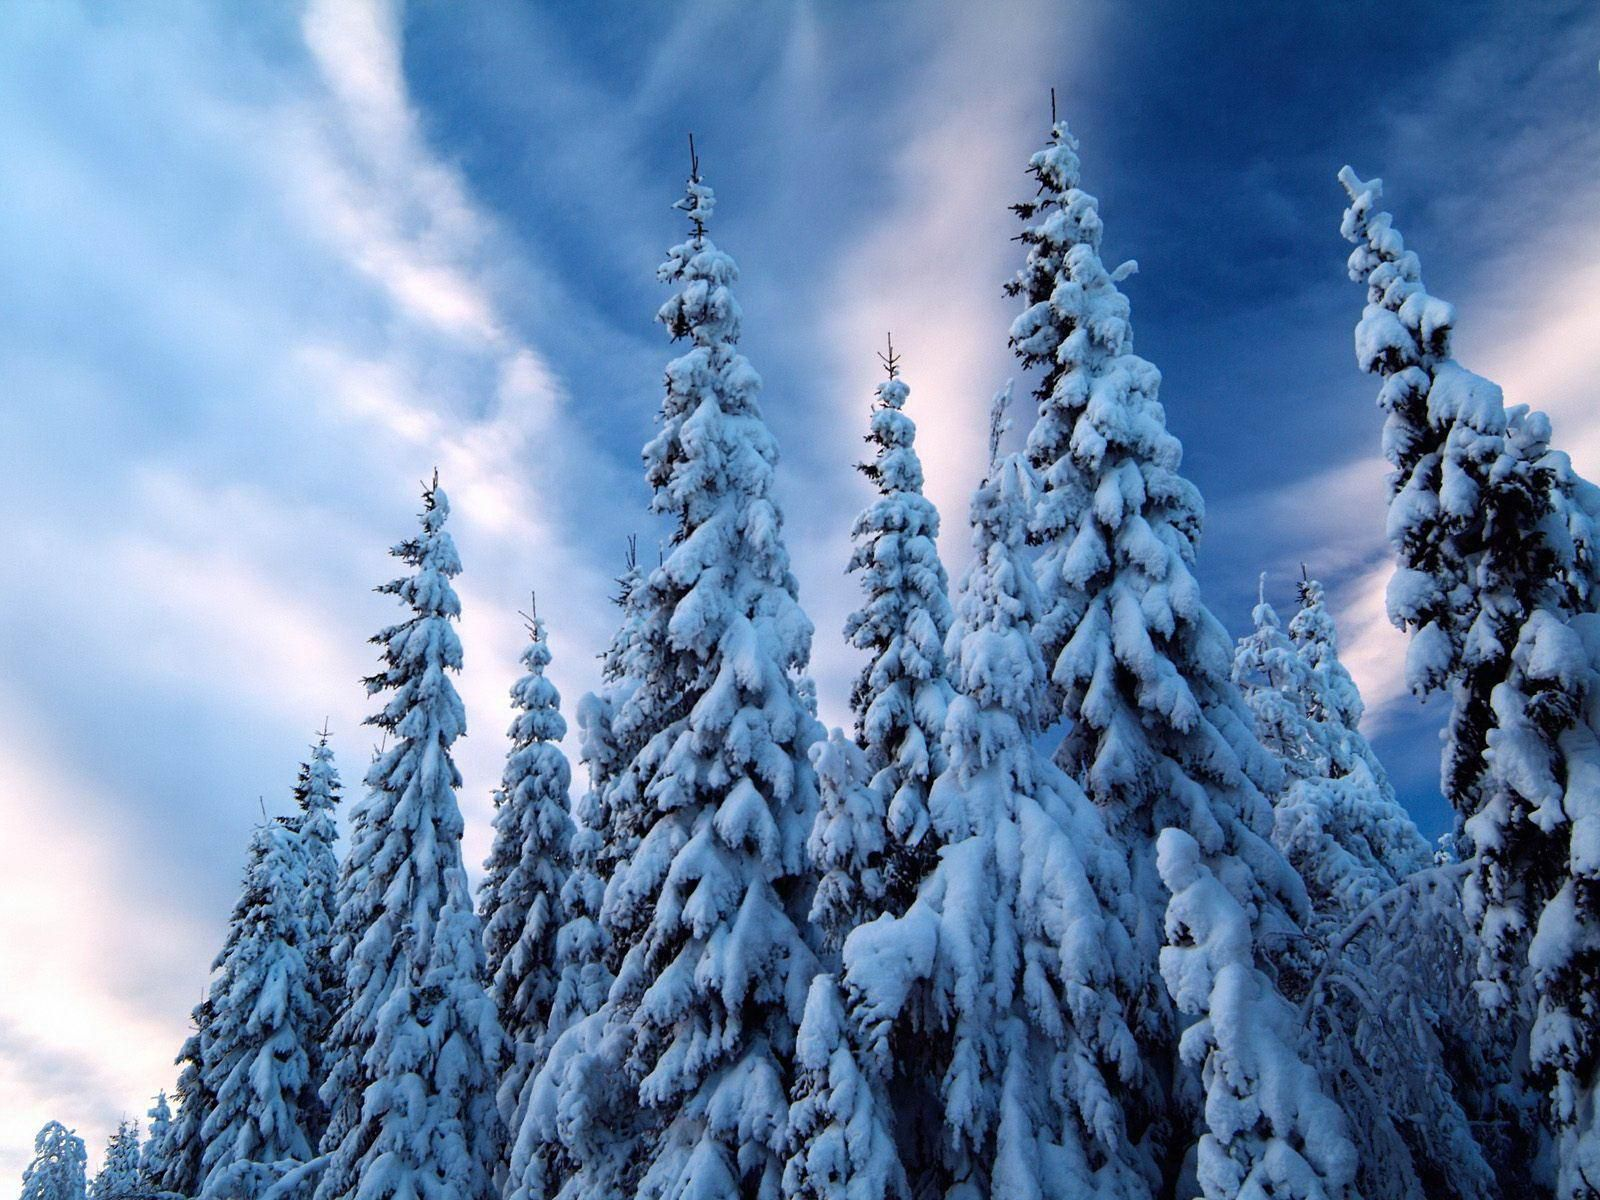 Snow Desktop Backgrounds Winter Scenery Winter Trees Tree Winter Wallpaper